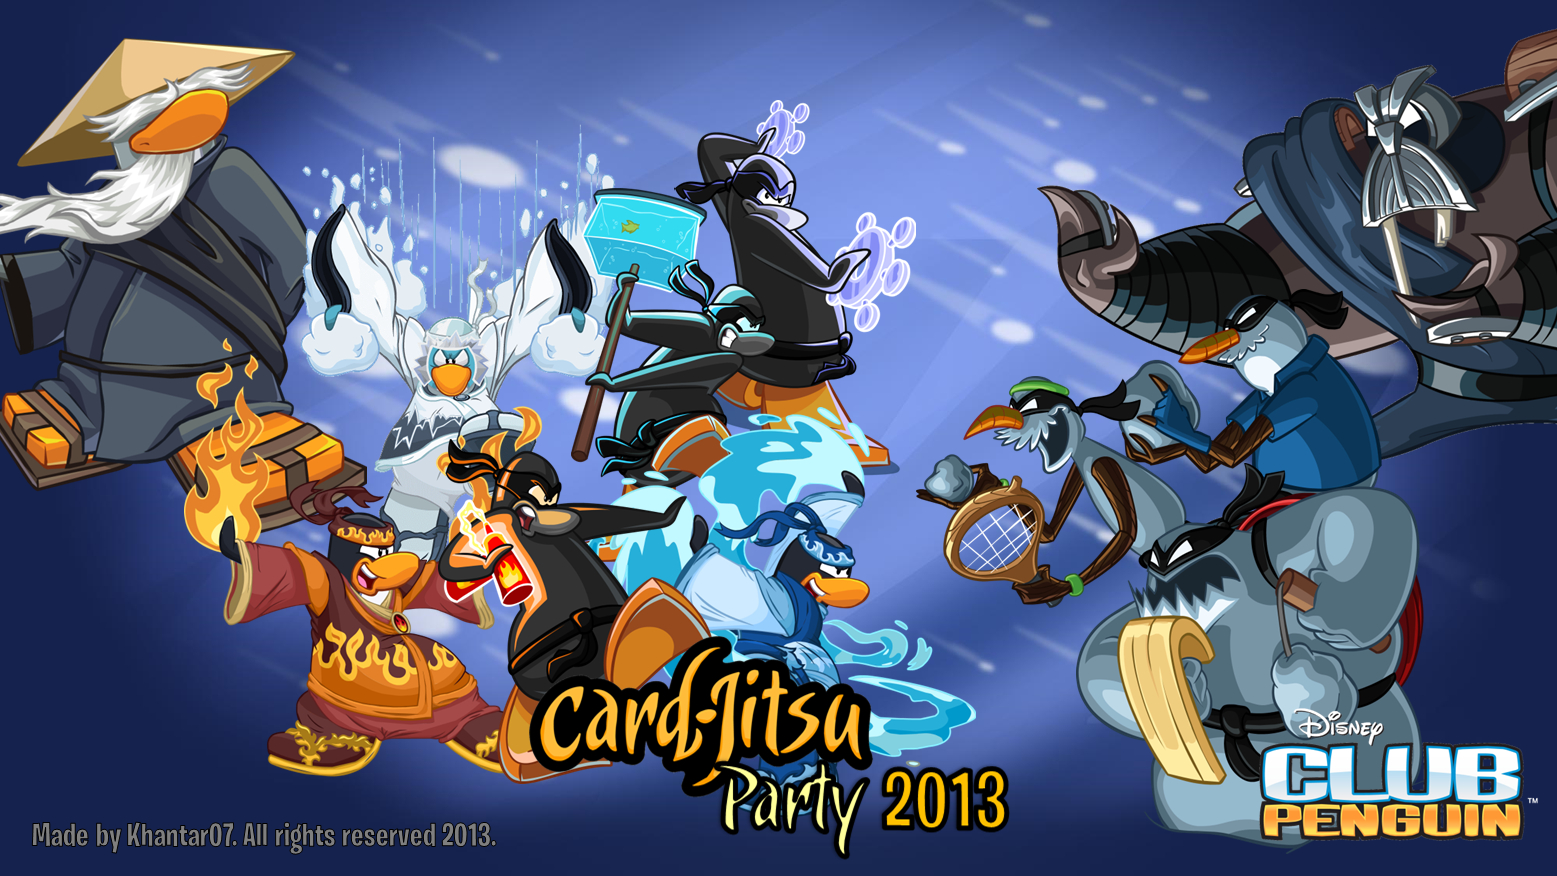 Image   Club Penguin Card Jitsu Party 2013 Wallpaper made by Khantar07 1557x876